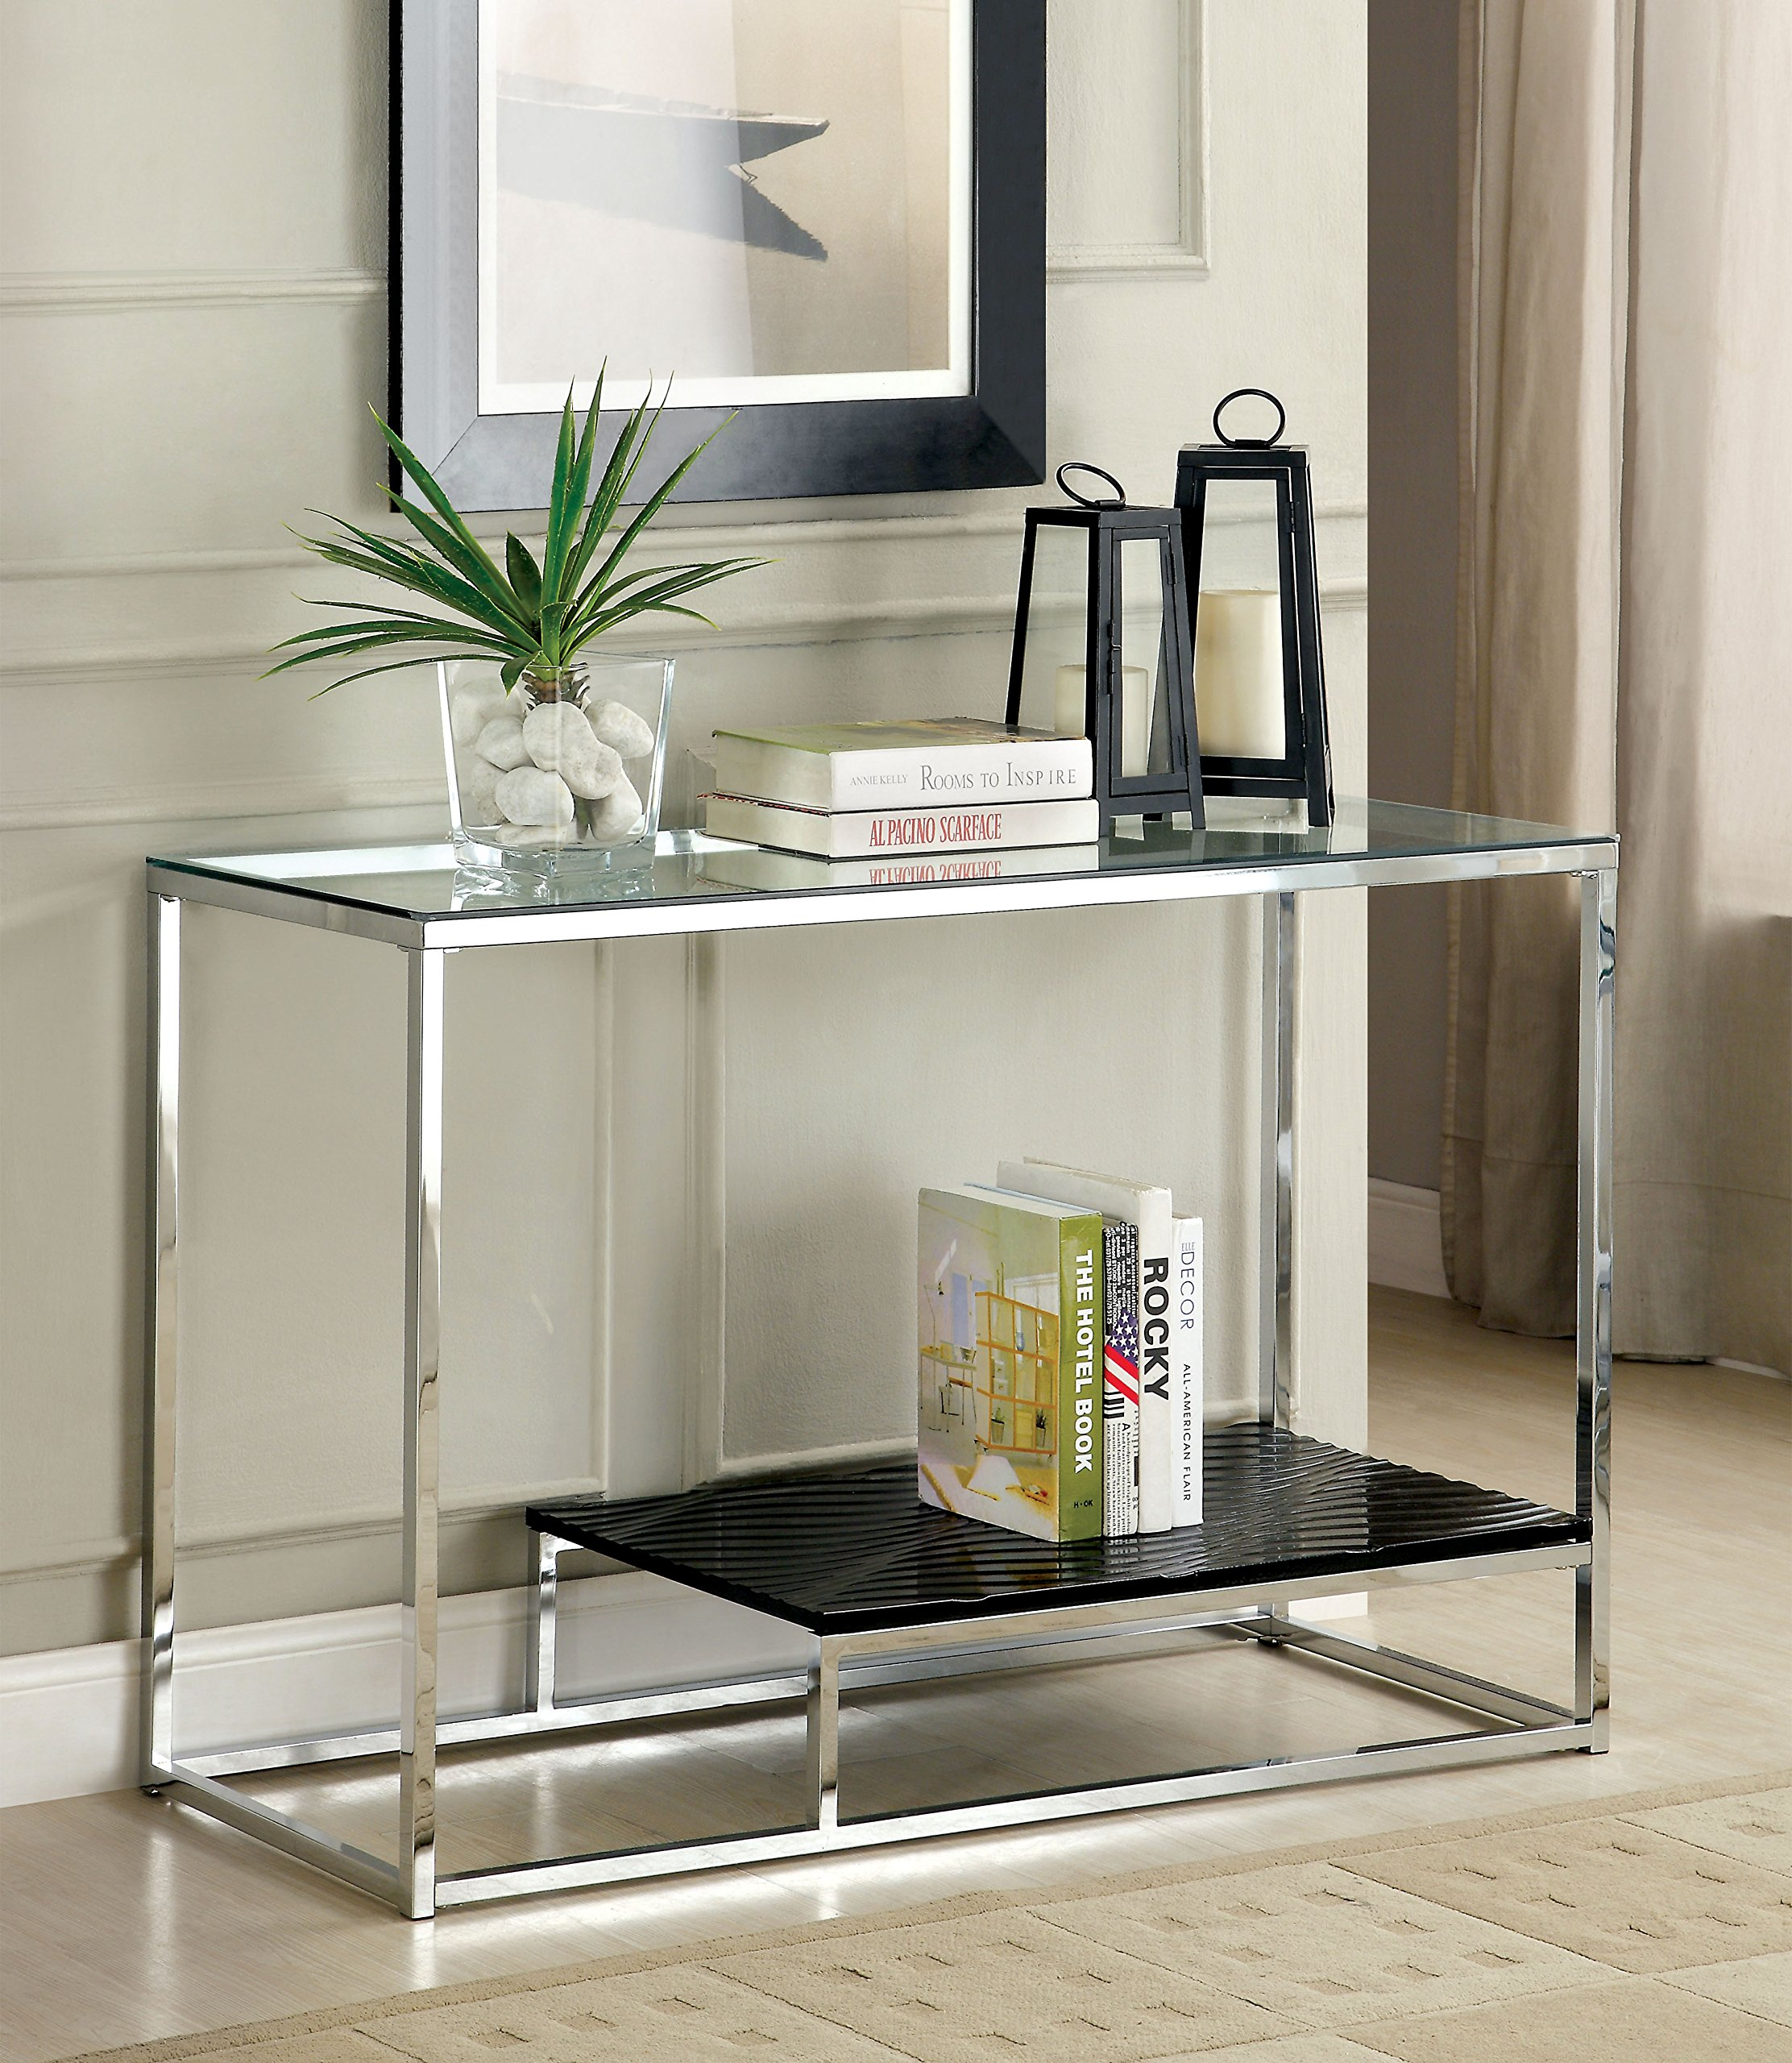 Furniture of America Gacelle Contemporary Glass Top Sofa Table, Black by Furniture of America